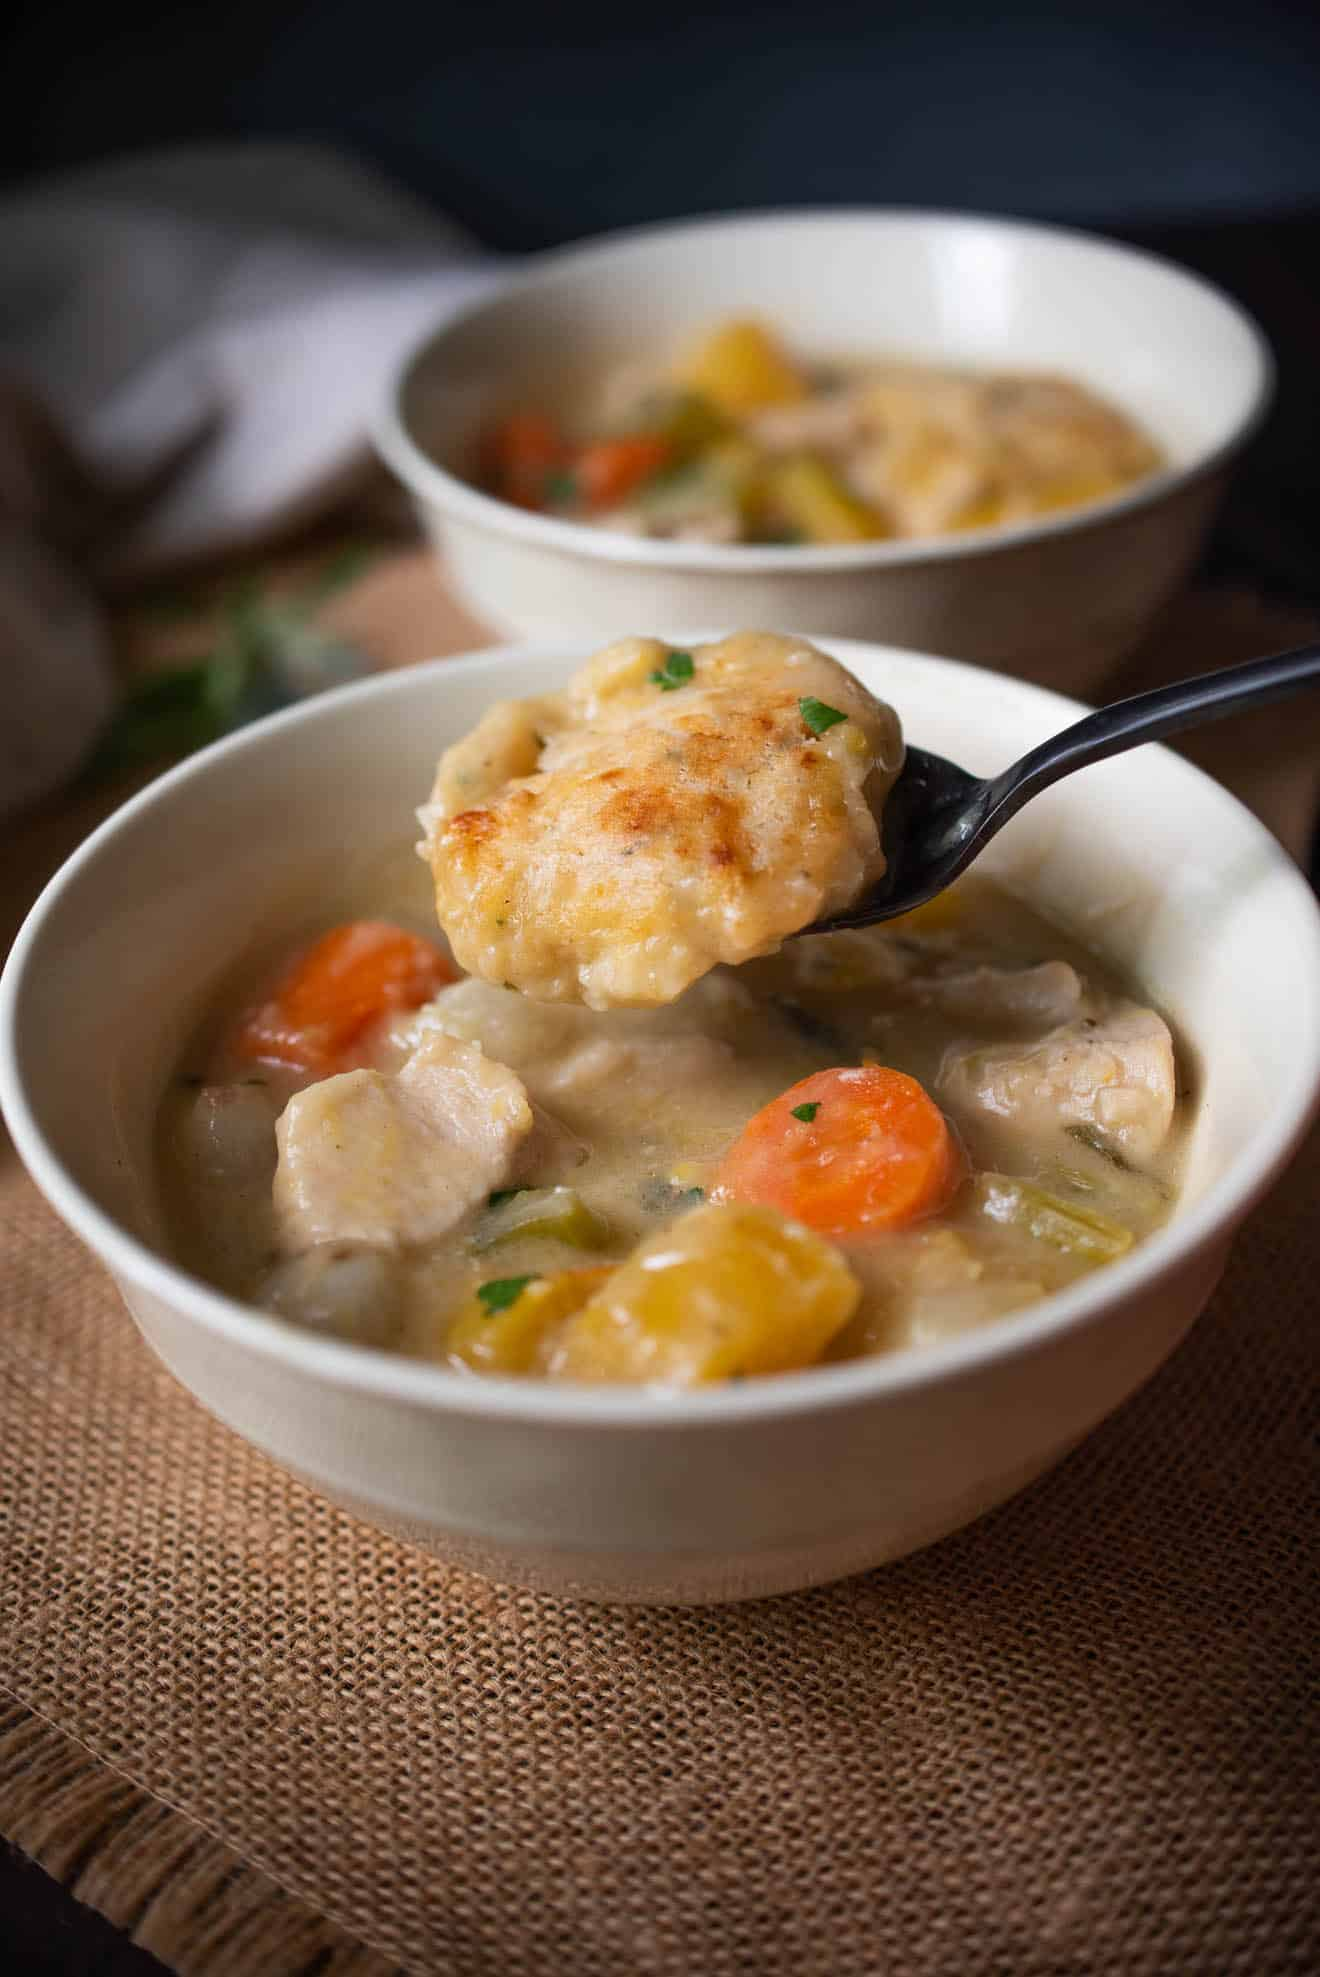 A dumpling on a spoon from Creamy Chicken Stew with Sage and Chive Dumplings